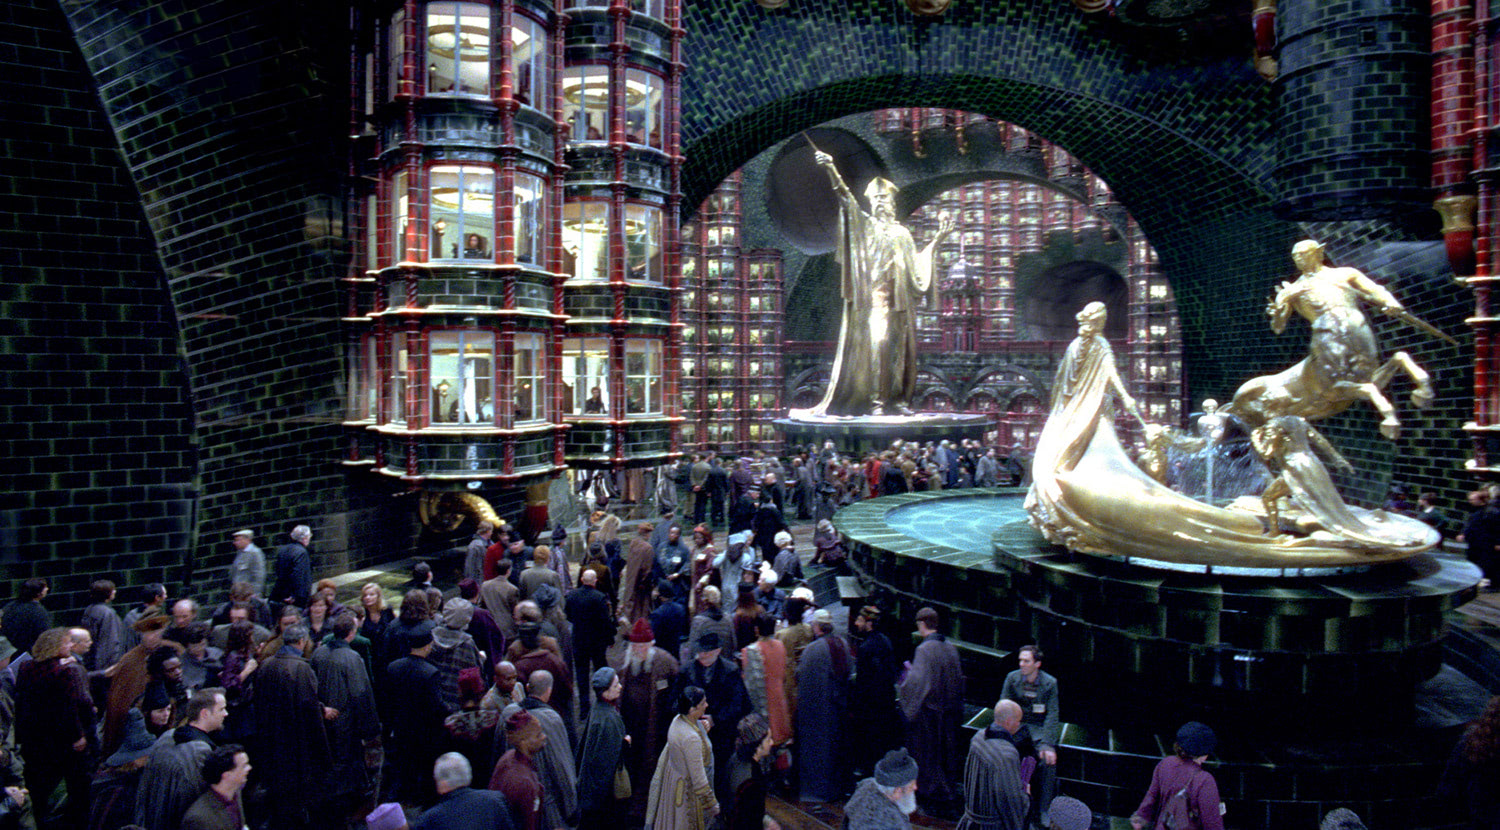 In the Ministry of Magic